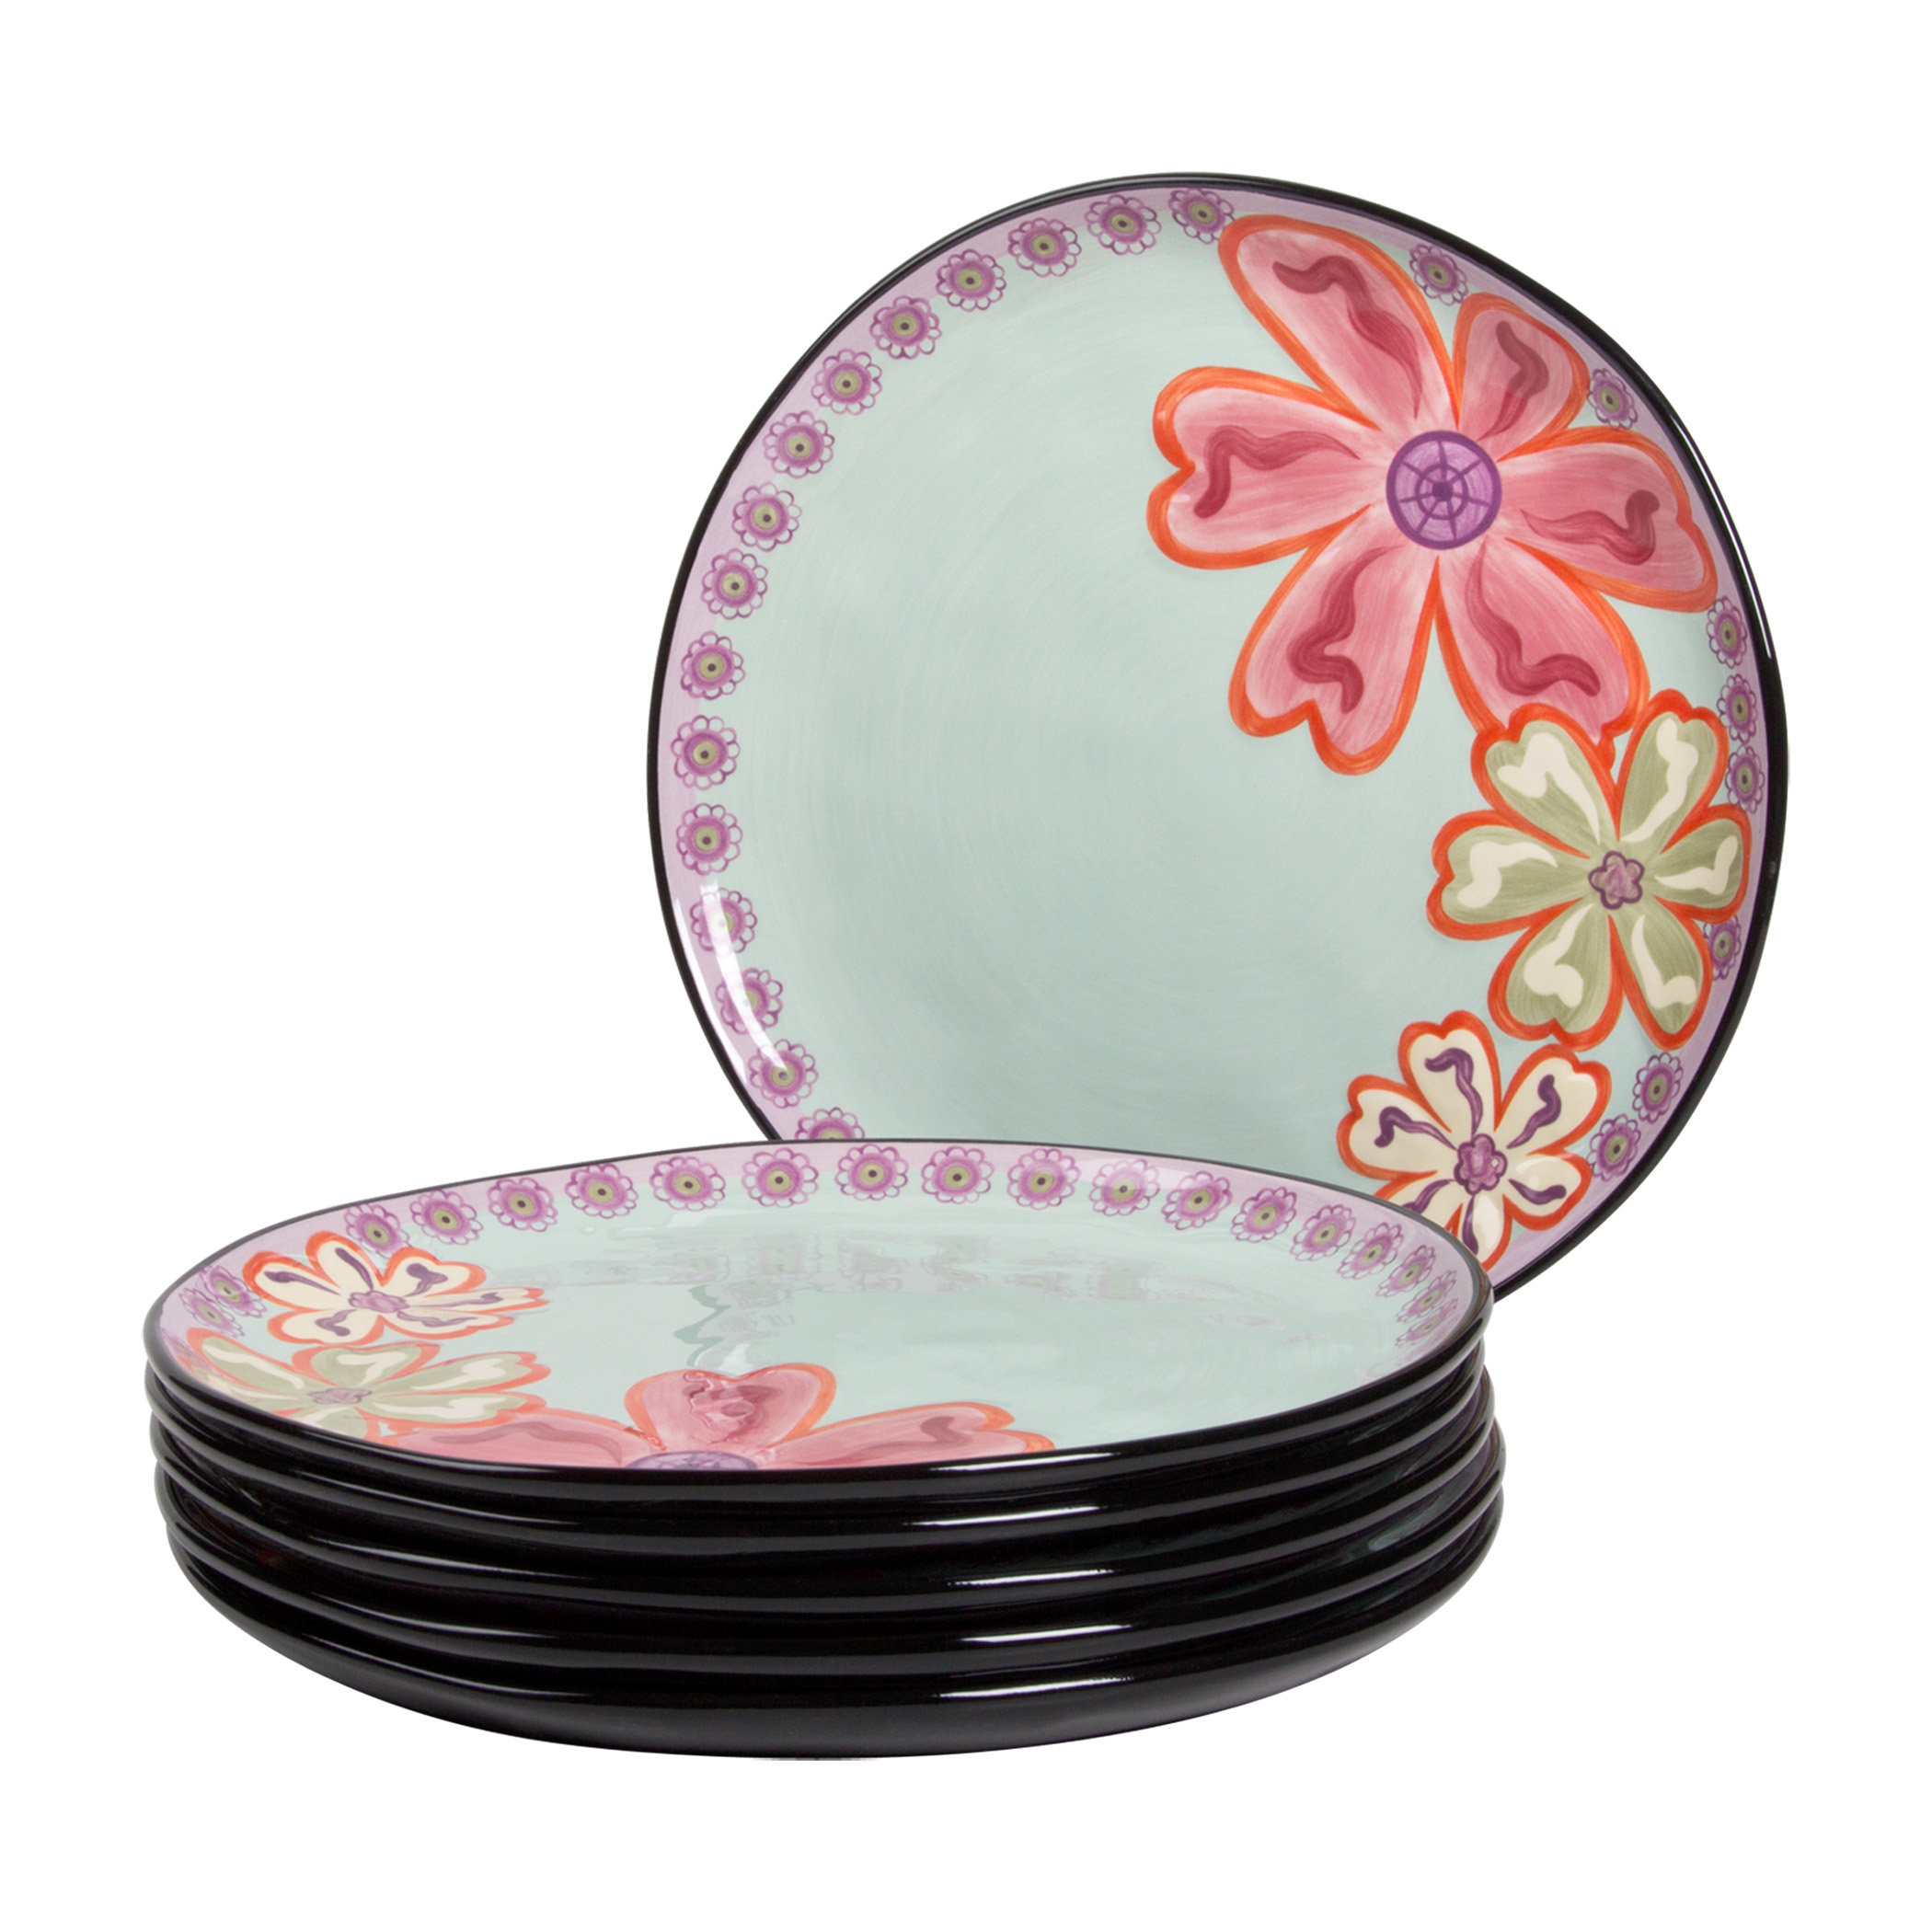 KD-T6401-EC-Set of Six 11 inch Dinner Plates by Kathy Davis  sc 1 st  Tabletops Unlimited & Set of Six 11 Inch Dinner Plates by Kathy Davis